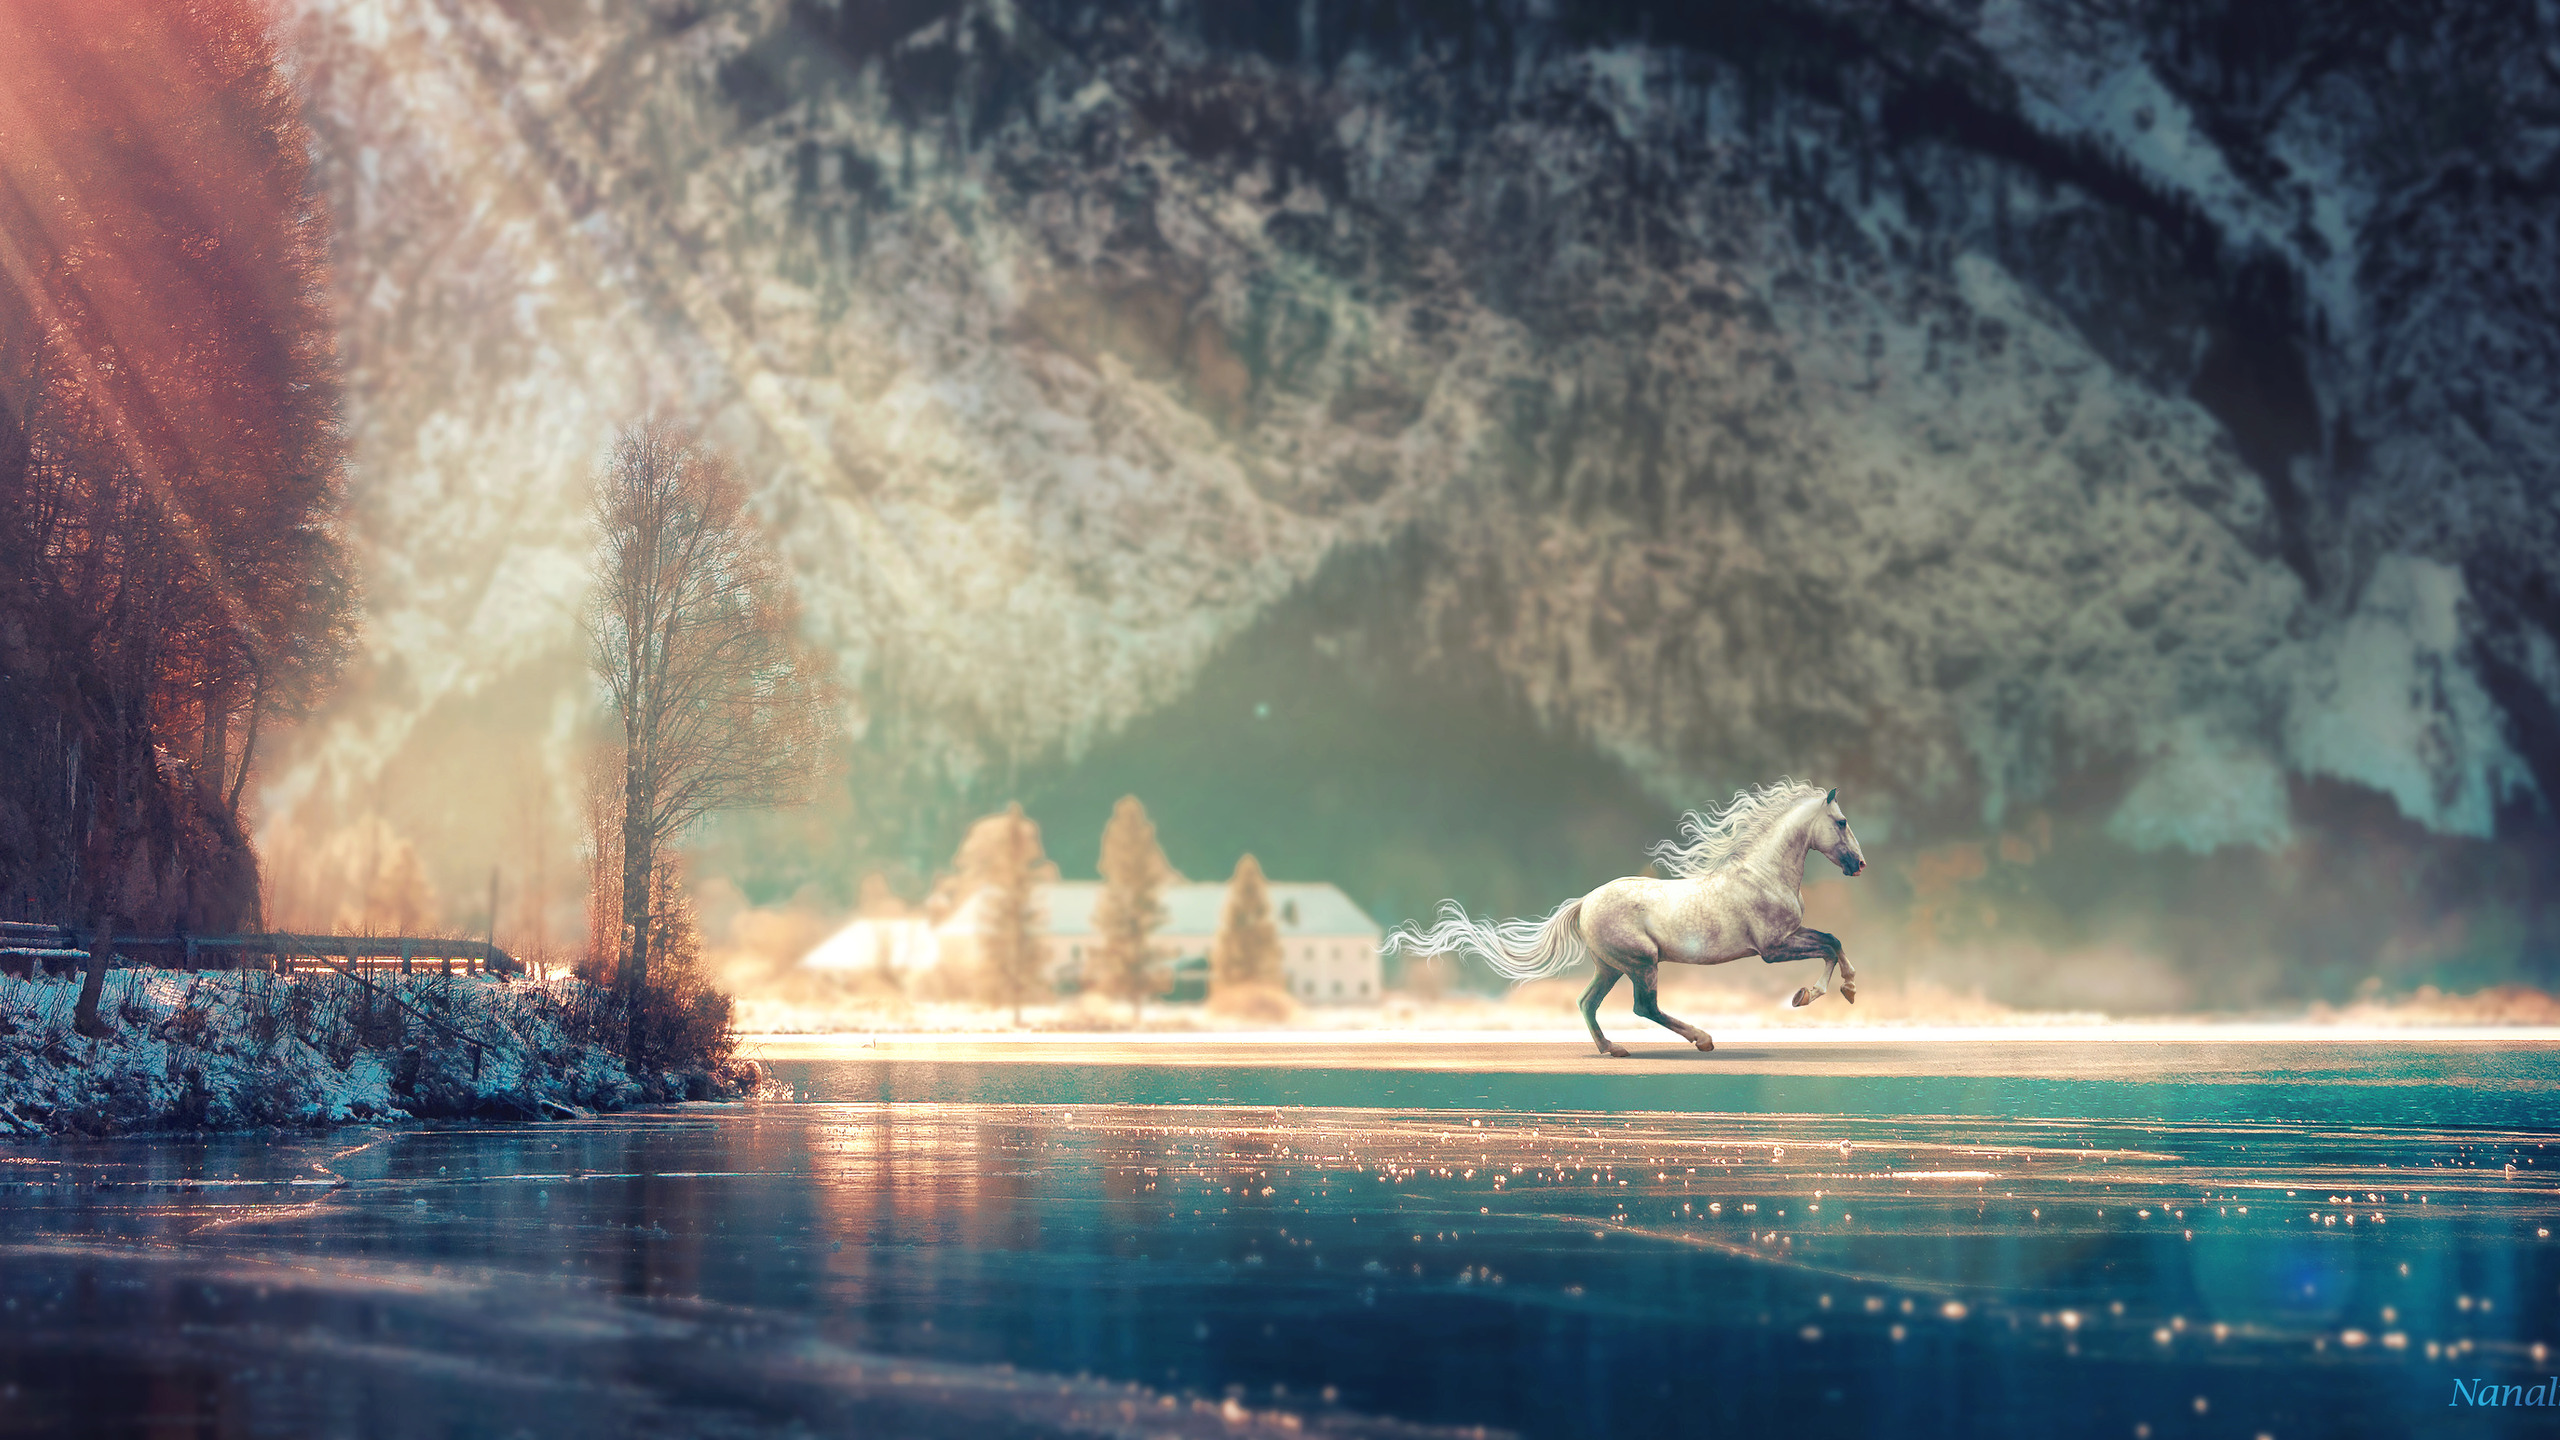 2560x1440 Horse Running Fantasy 4k 1440p Resolution Hd 4k Wallpapers Images Backgrounds Photos And Pictures